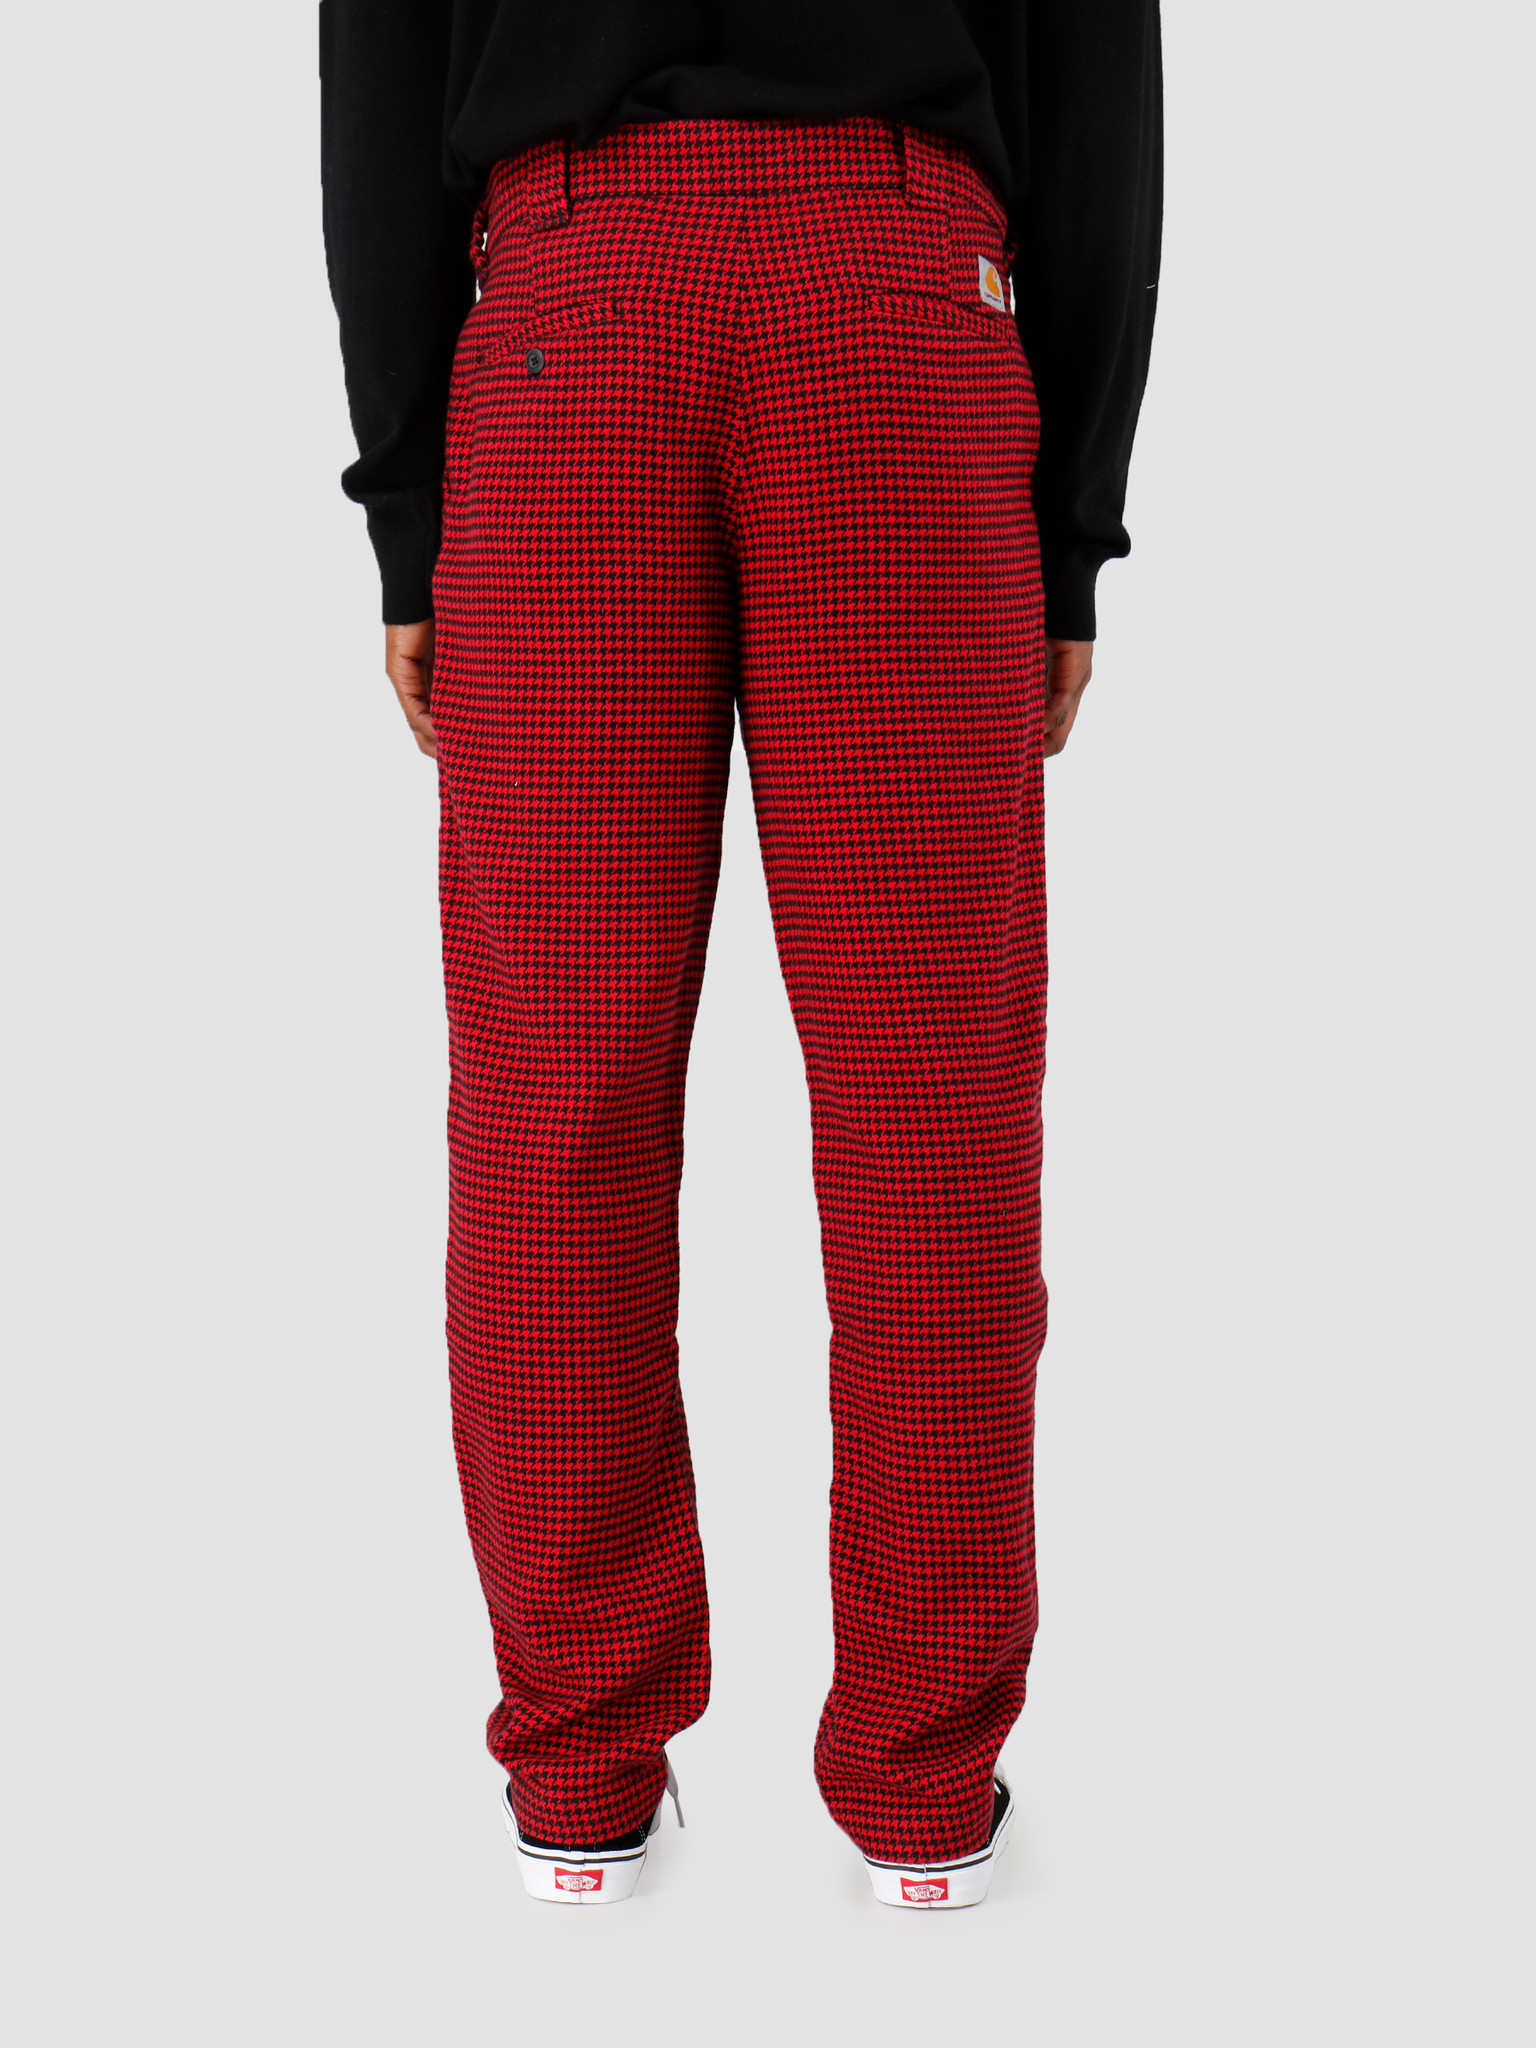 Carhartt WIP Carhartt WIP Norvell Pant Norvell Check Cardinal I027122